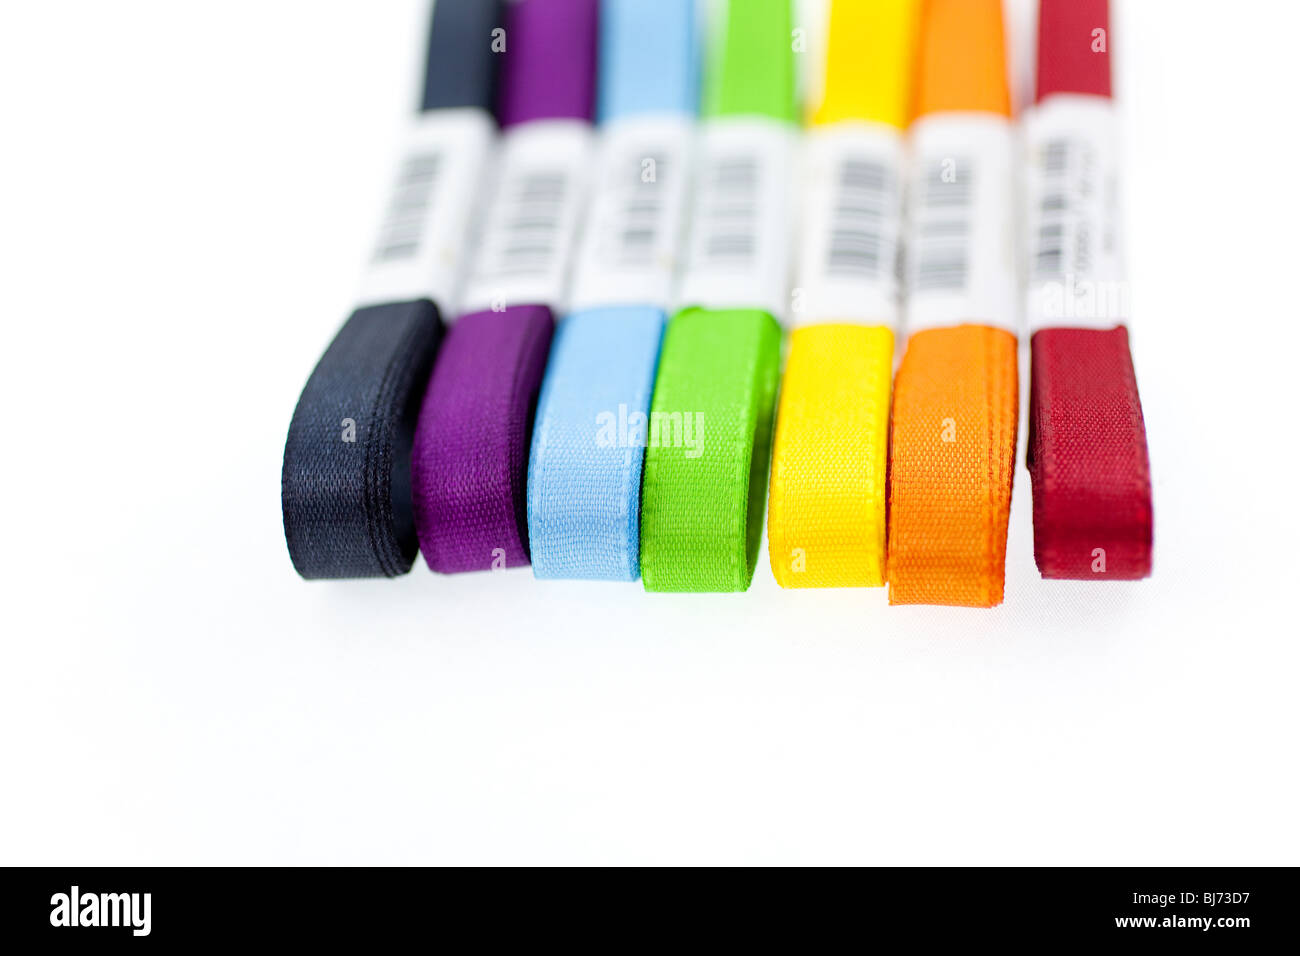 seven colored ribbons on white background. closeup - Stock Image